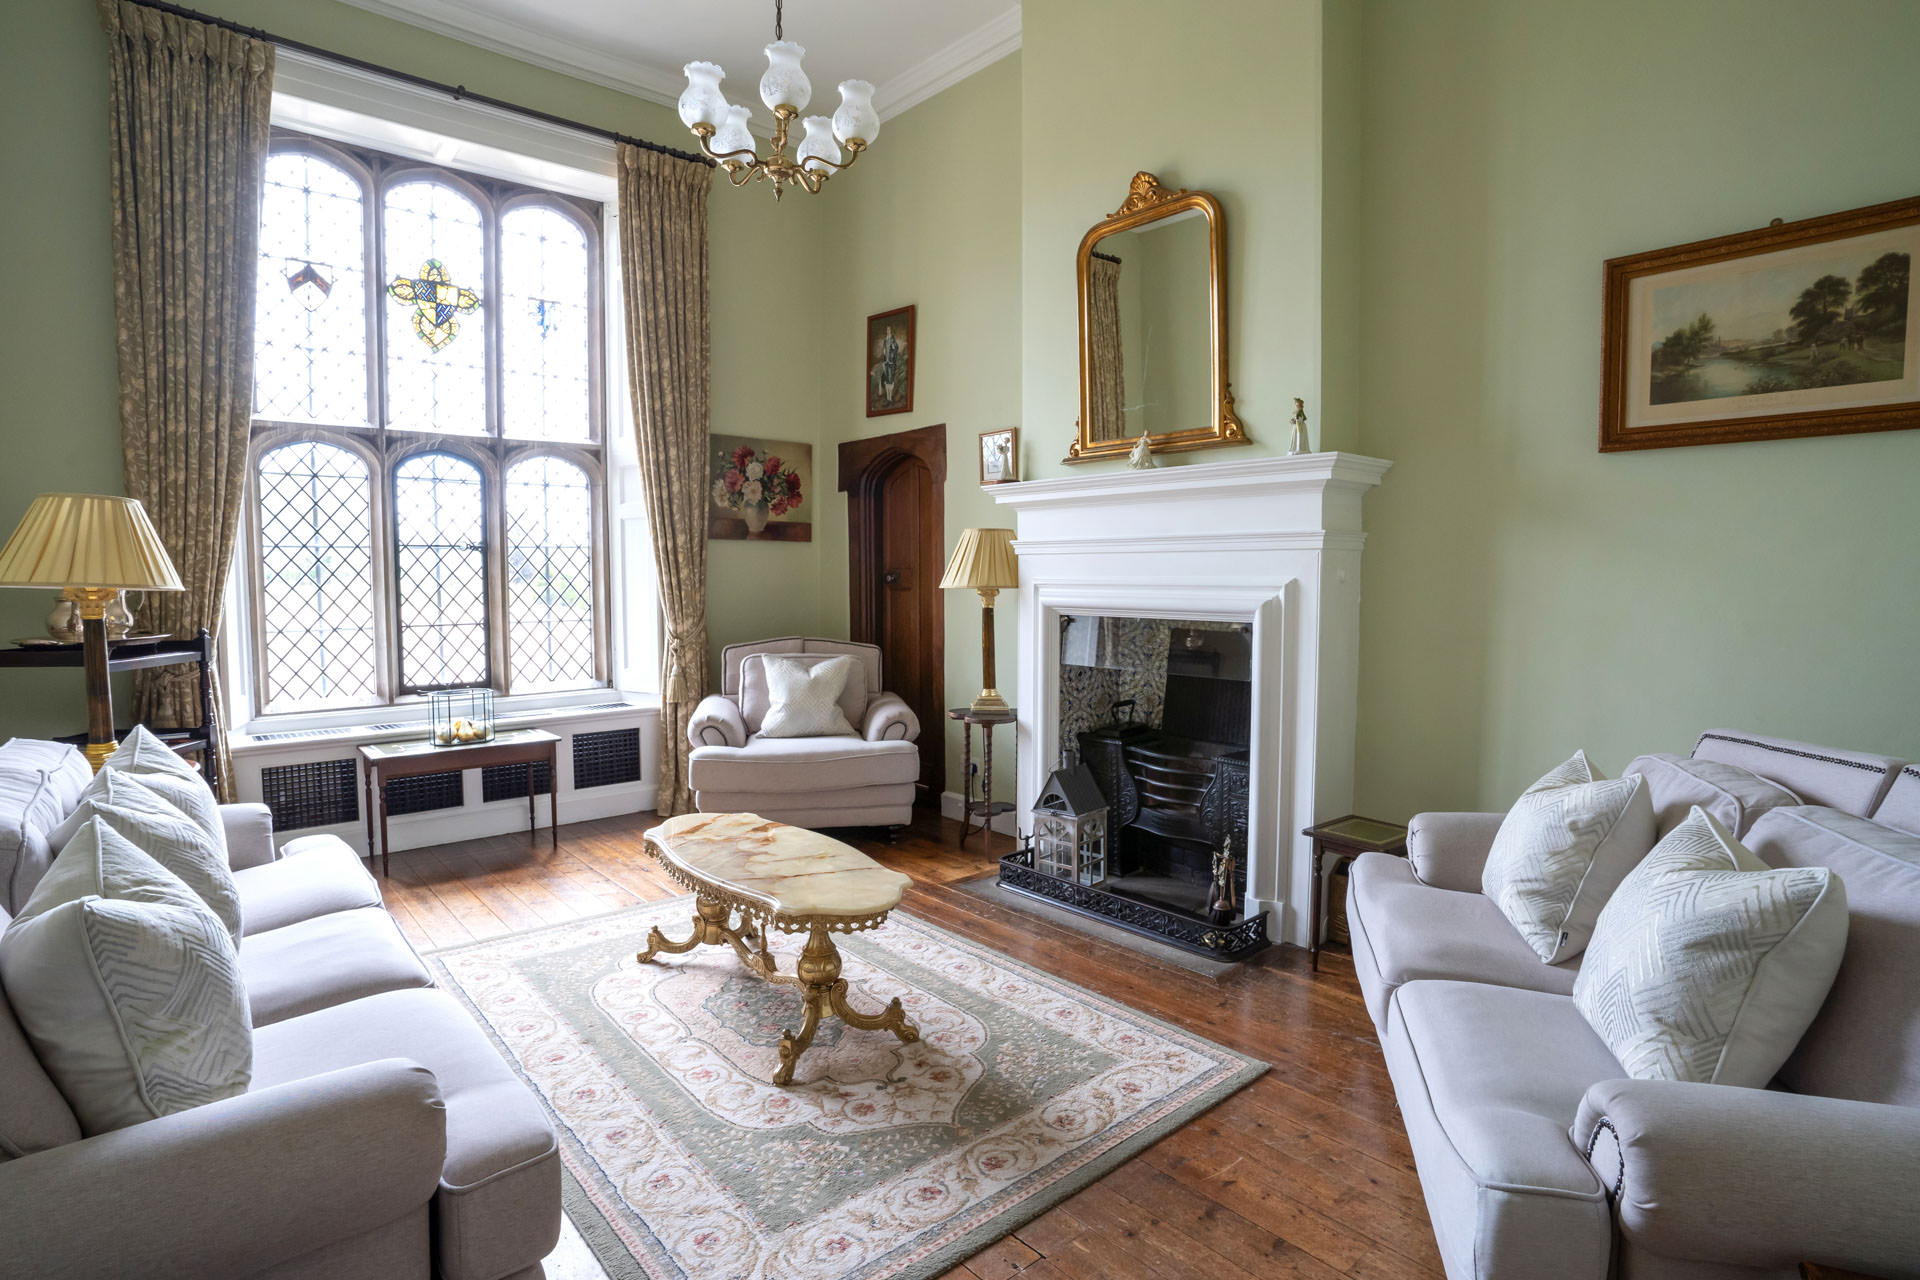 Preparation and Relaxation Room at Hengrave Hall